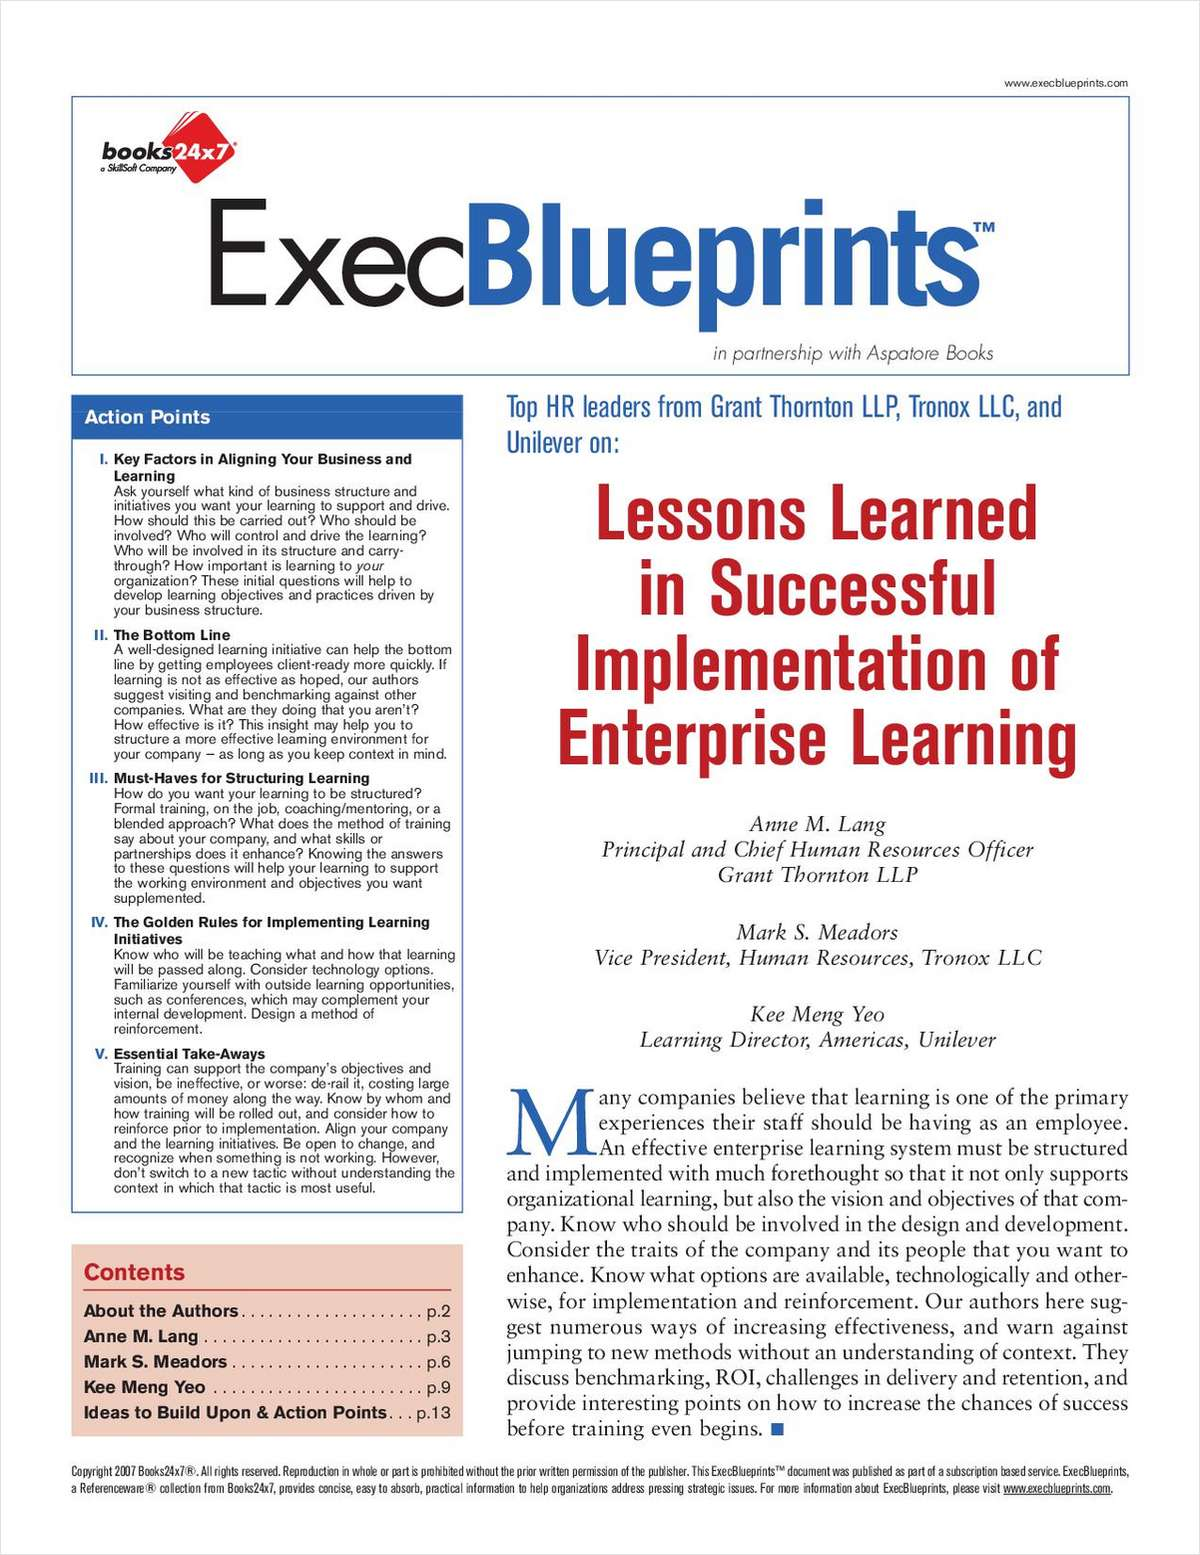 Lessons Learned In Successful Implementation of Enterprise Learning